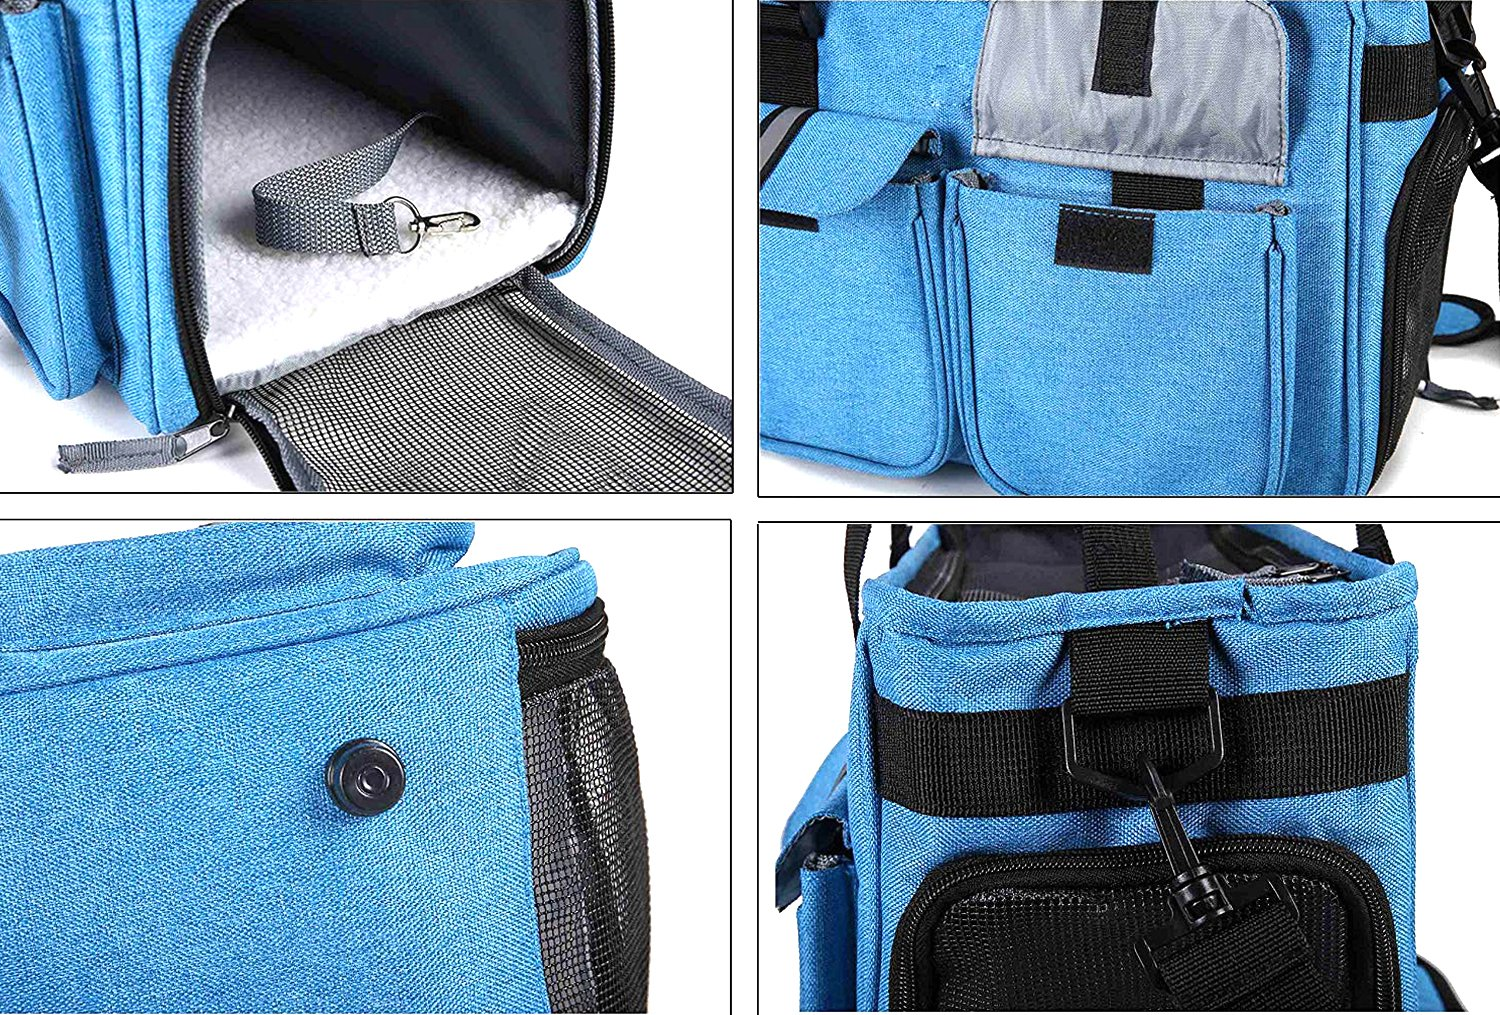 Pettom Dog Carrier Pet Airline Approved Cat Travel Bag with Fleece Mat Pet Carrier Purse Durable for Small Dogs Cats Puppies Kittens Rabbits